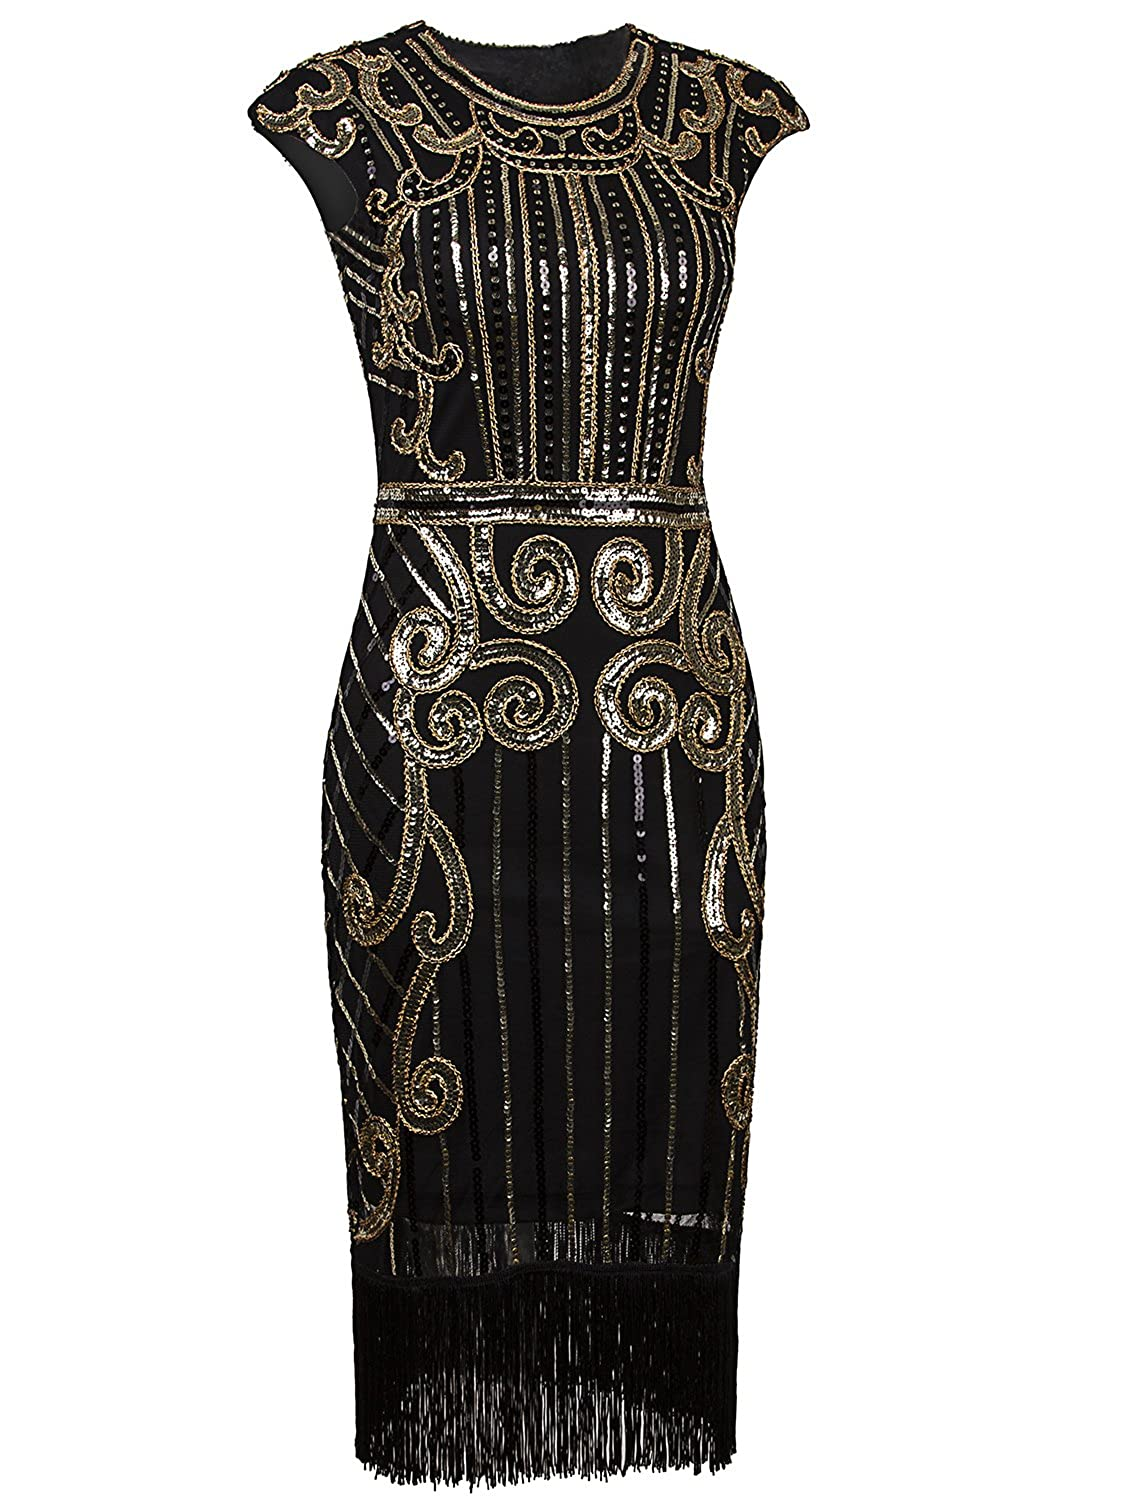 1920s Style Dresses, Flapper Dresses Vijiv 1920s Vintage Inspired Sequin Embellished Fringe Long Gatsby Flapper Dress $33.99 AT vintagedancer.com